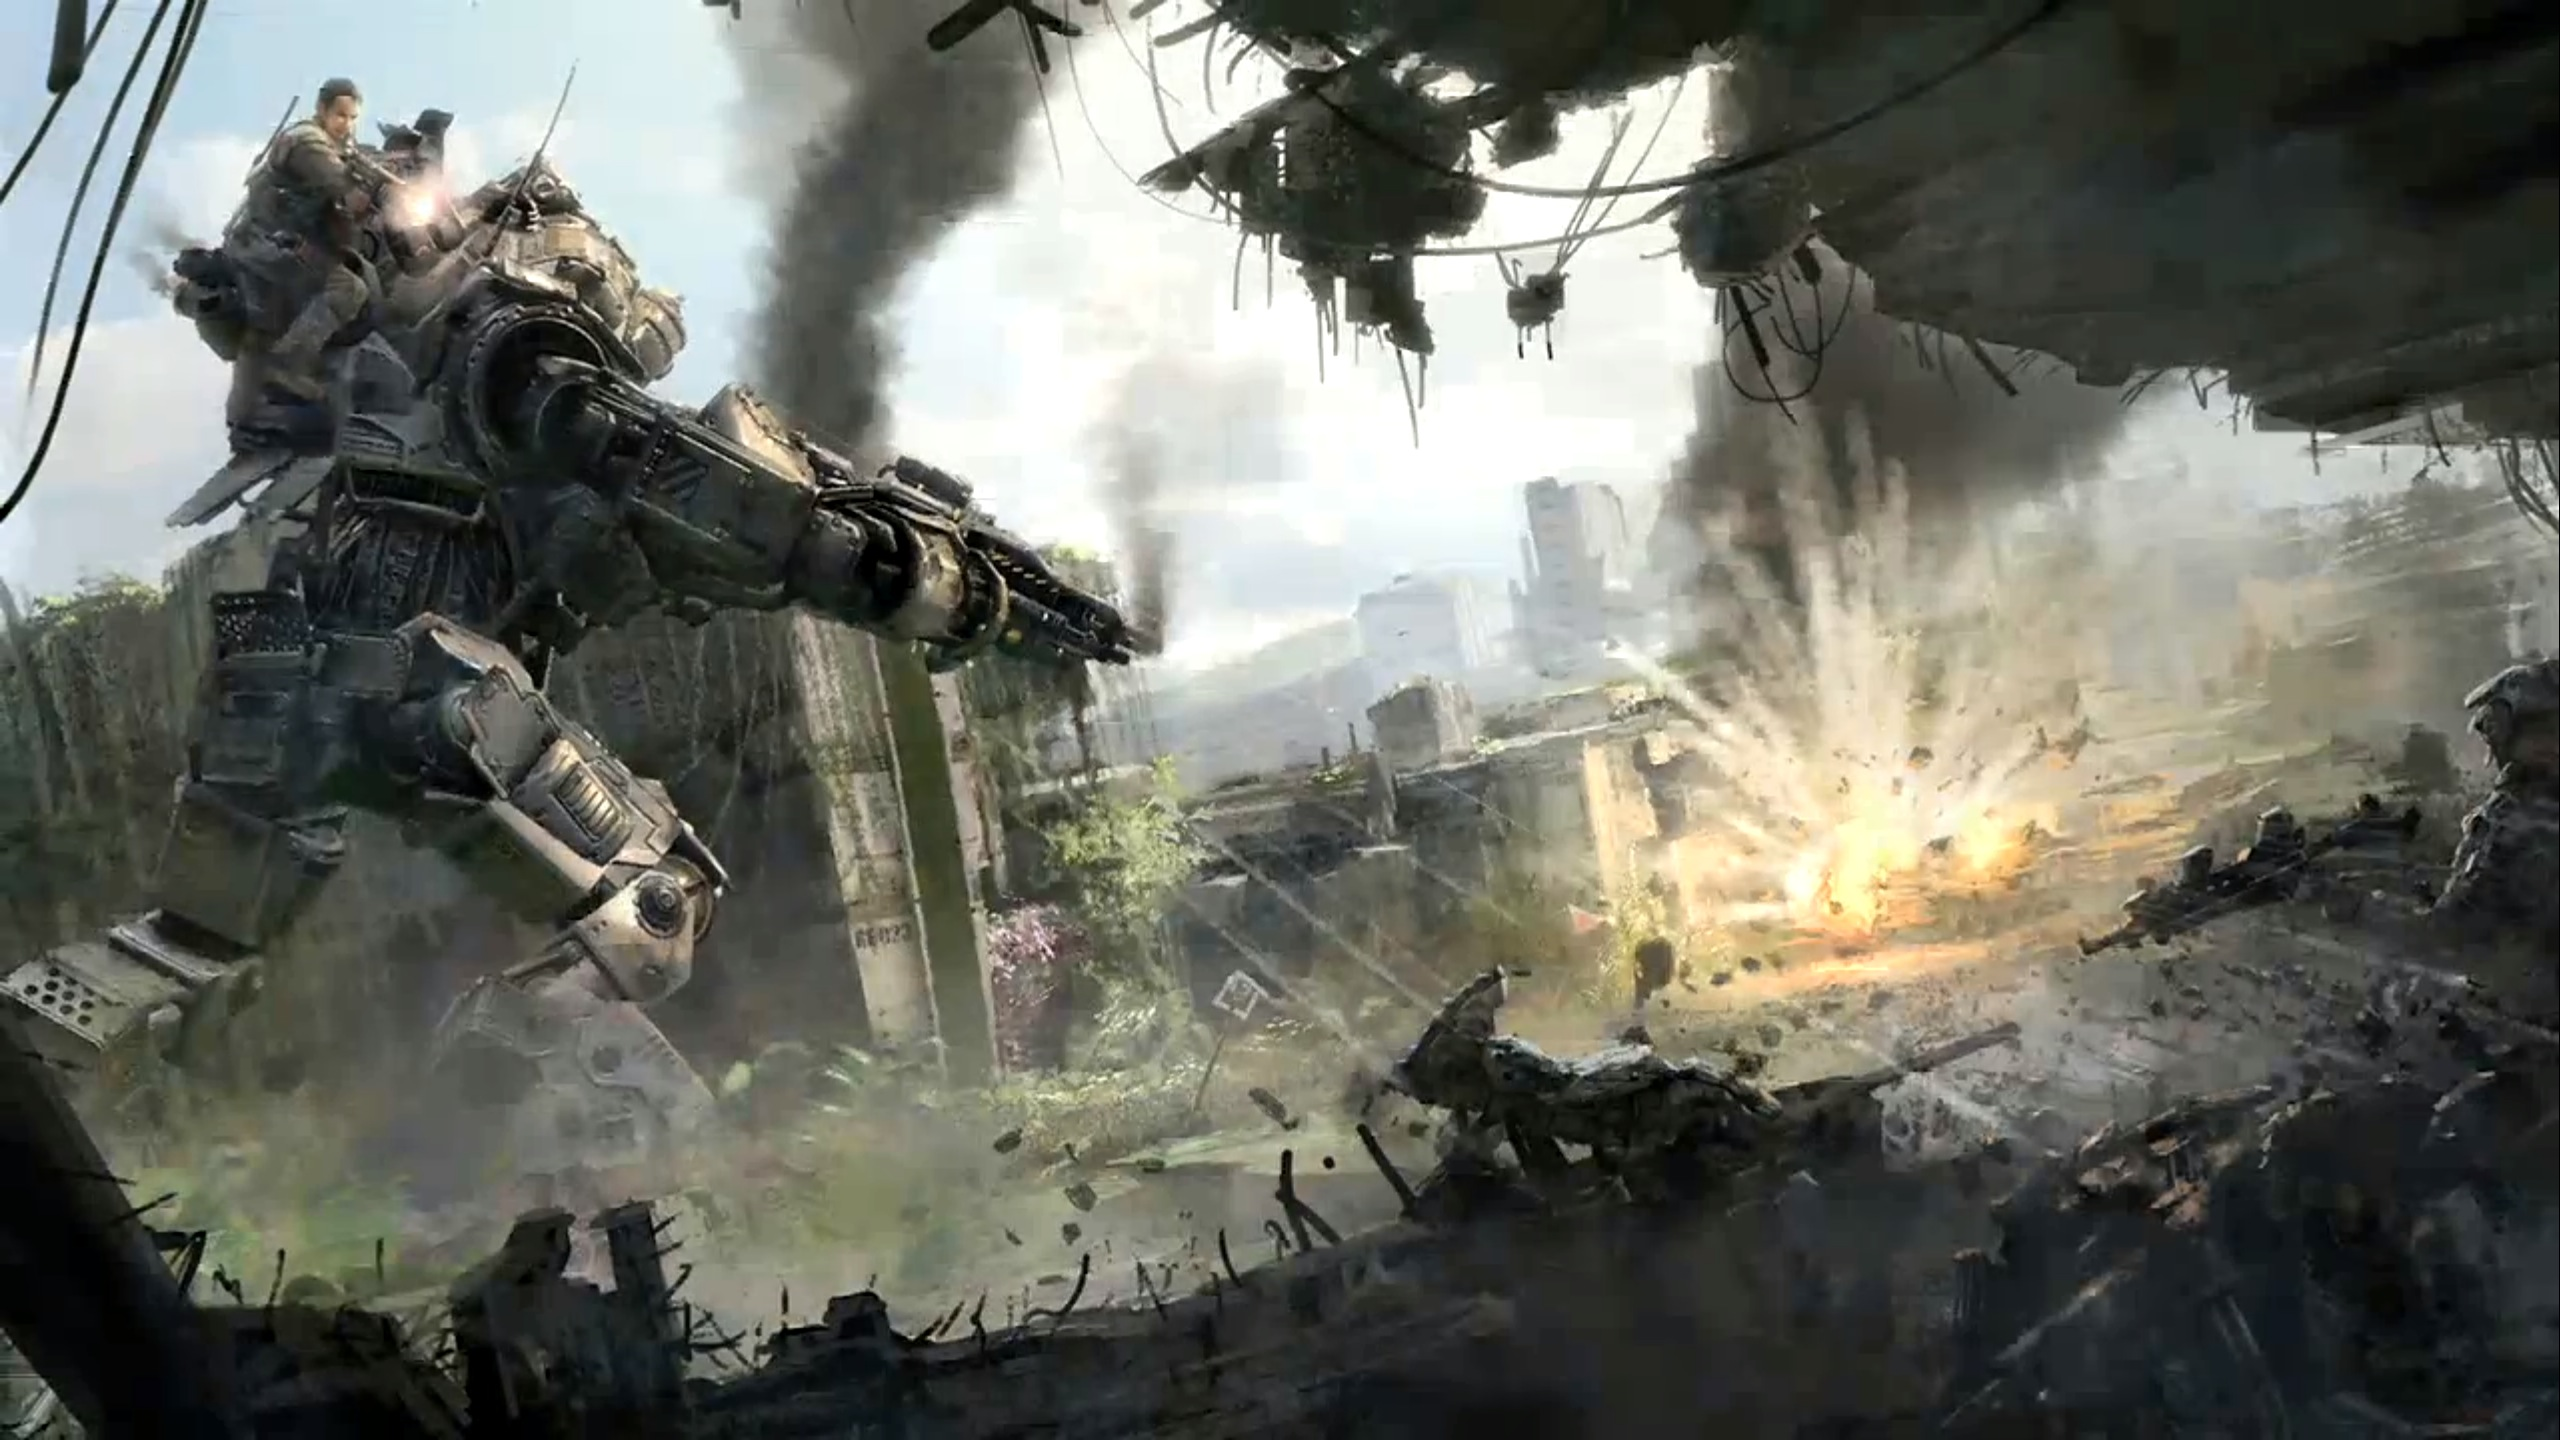 file_7643_ea-games-titanfall-wallpaper-fantasy-action-adventure-picture-titanfall-wallpaper